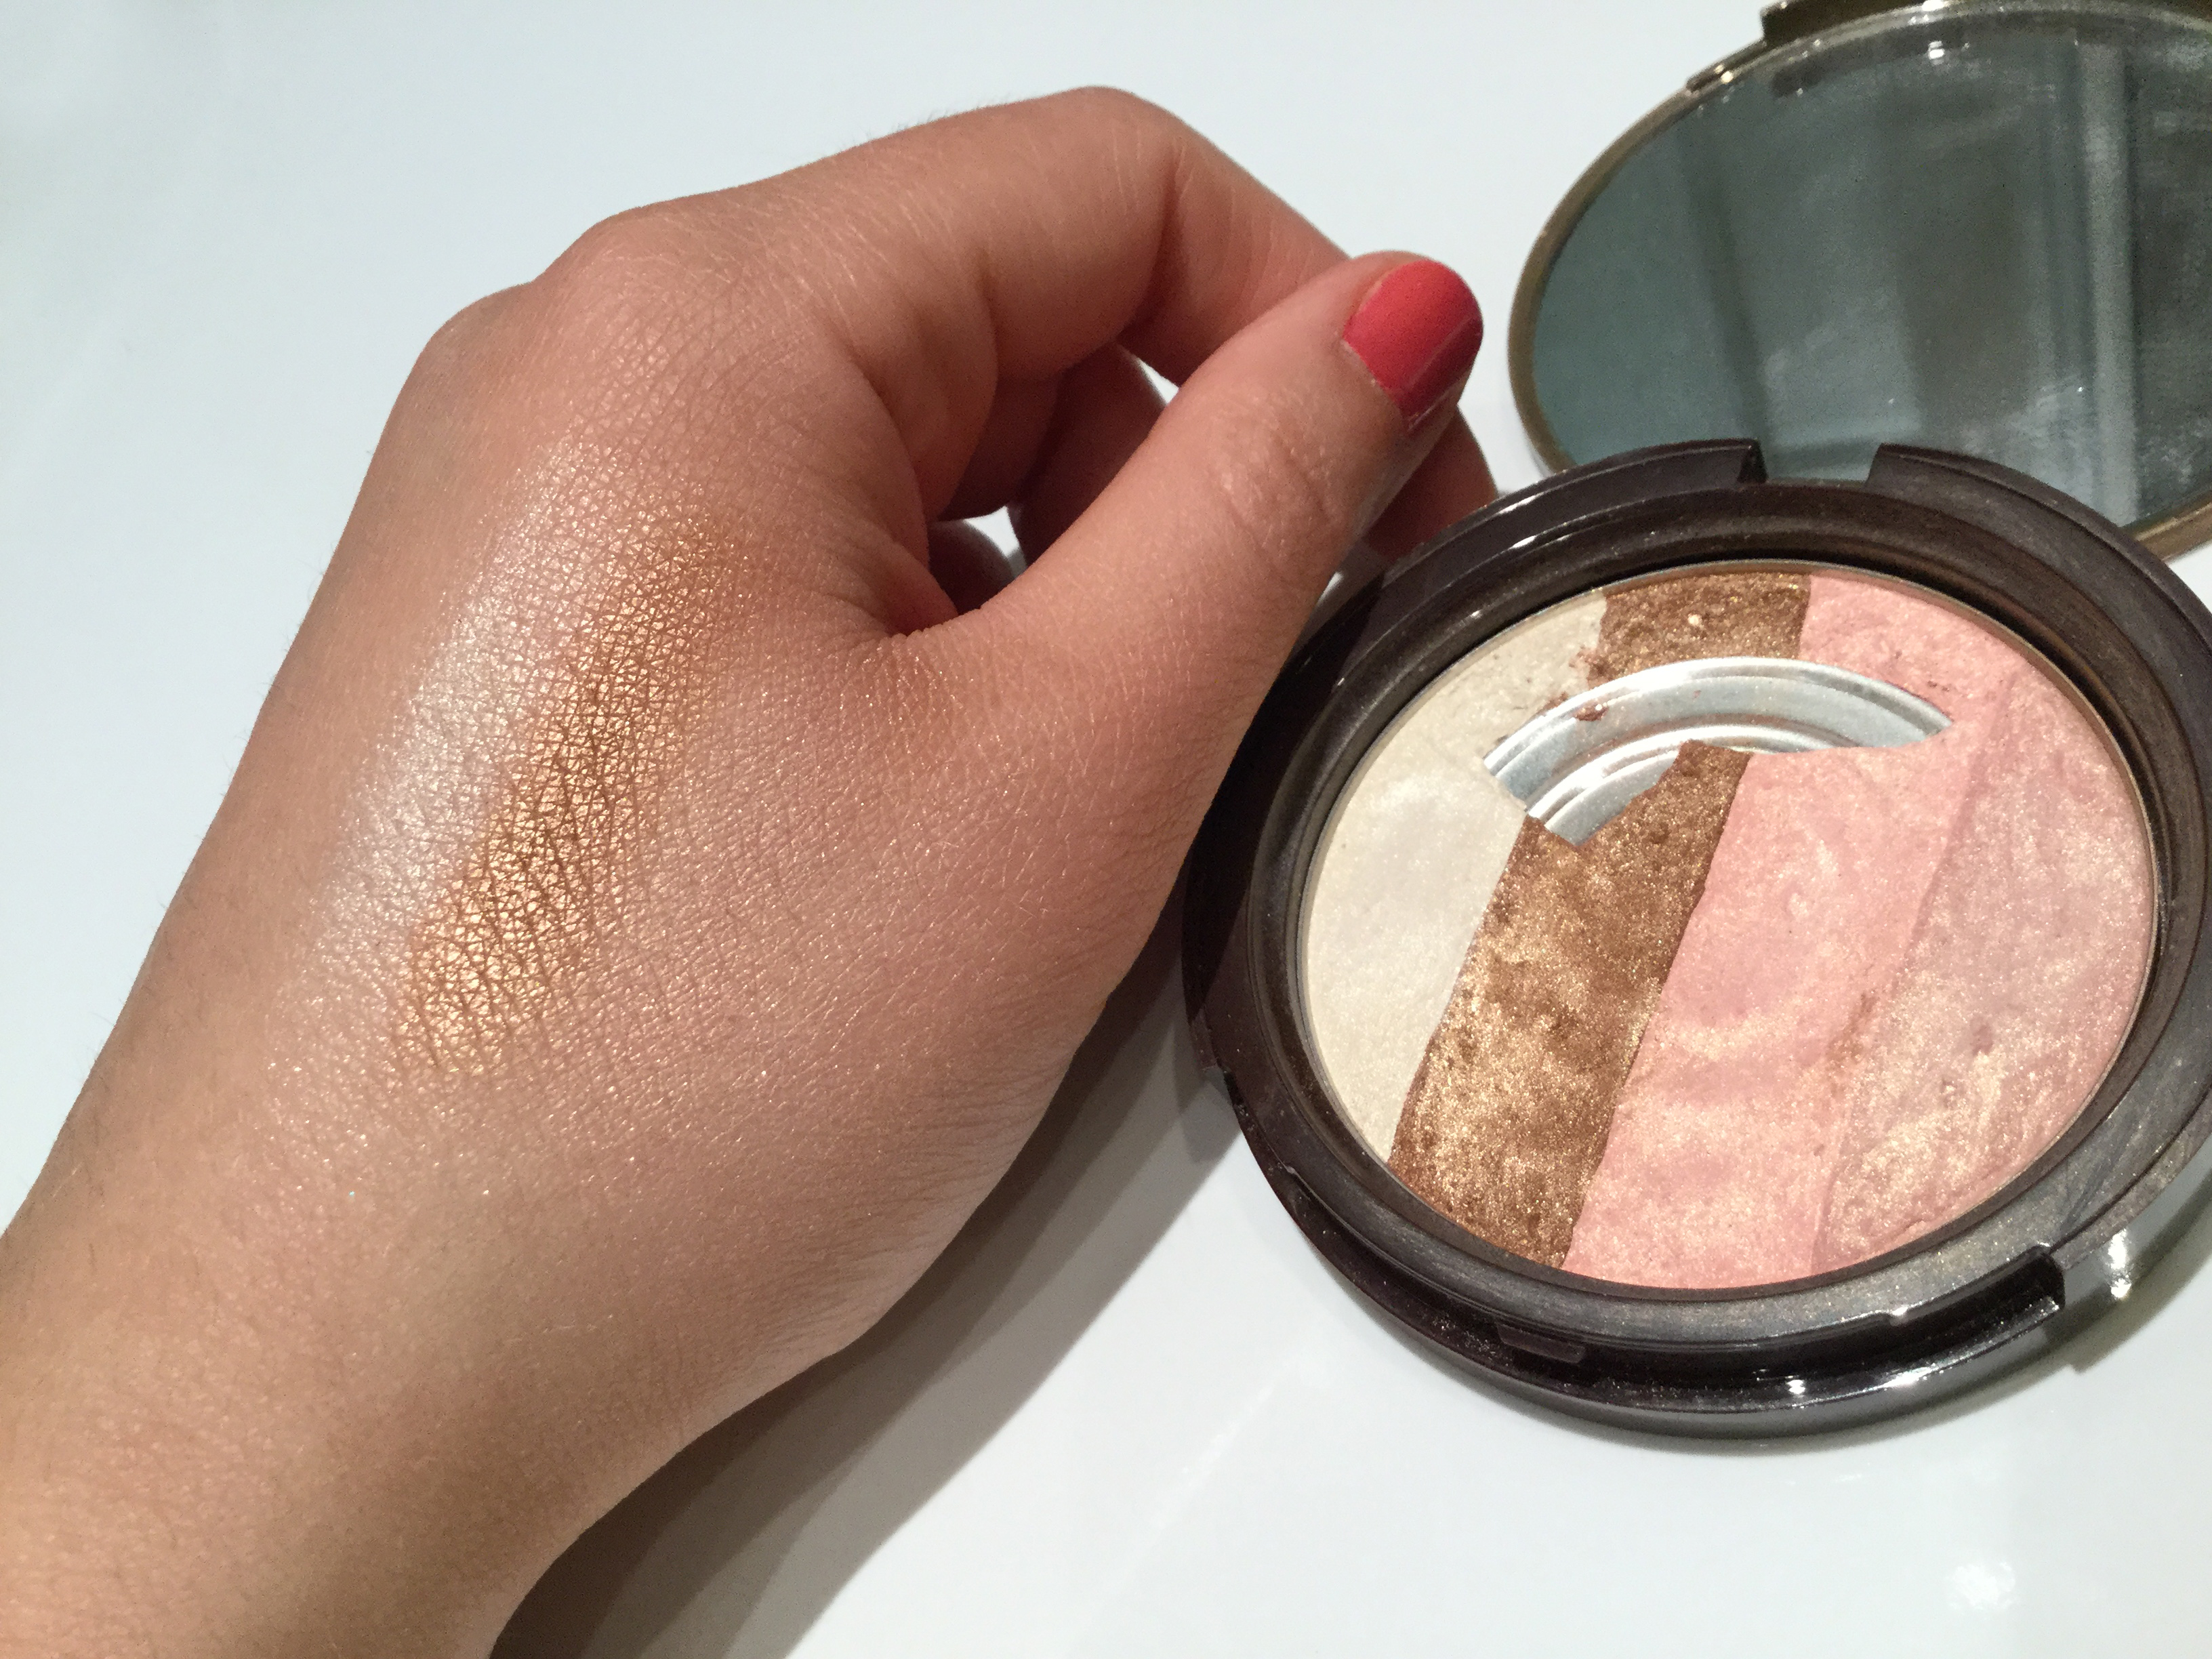 Sun Bunny de Too faced swatch.